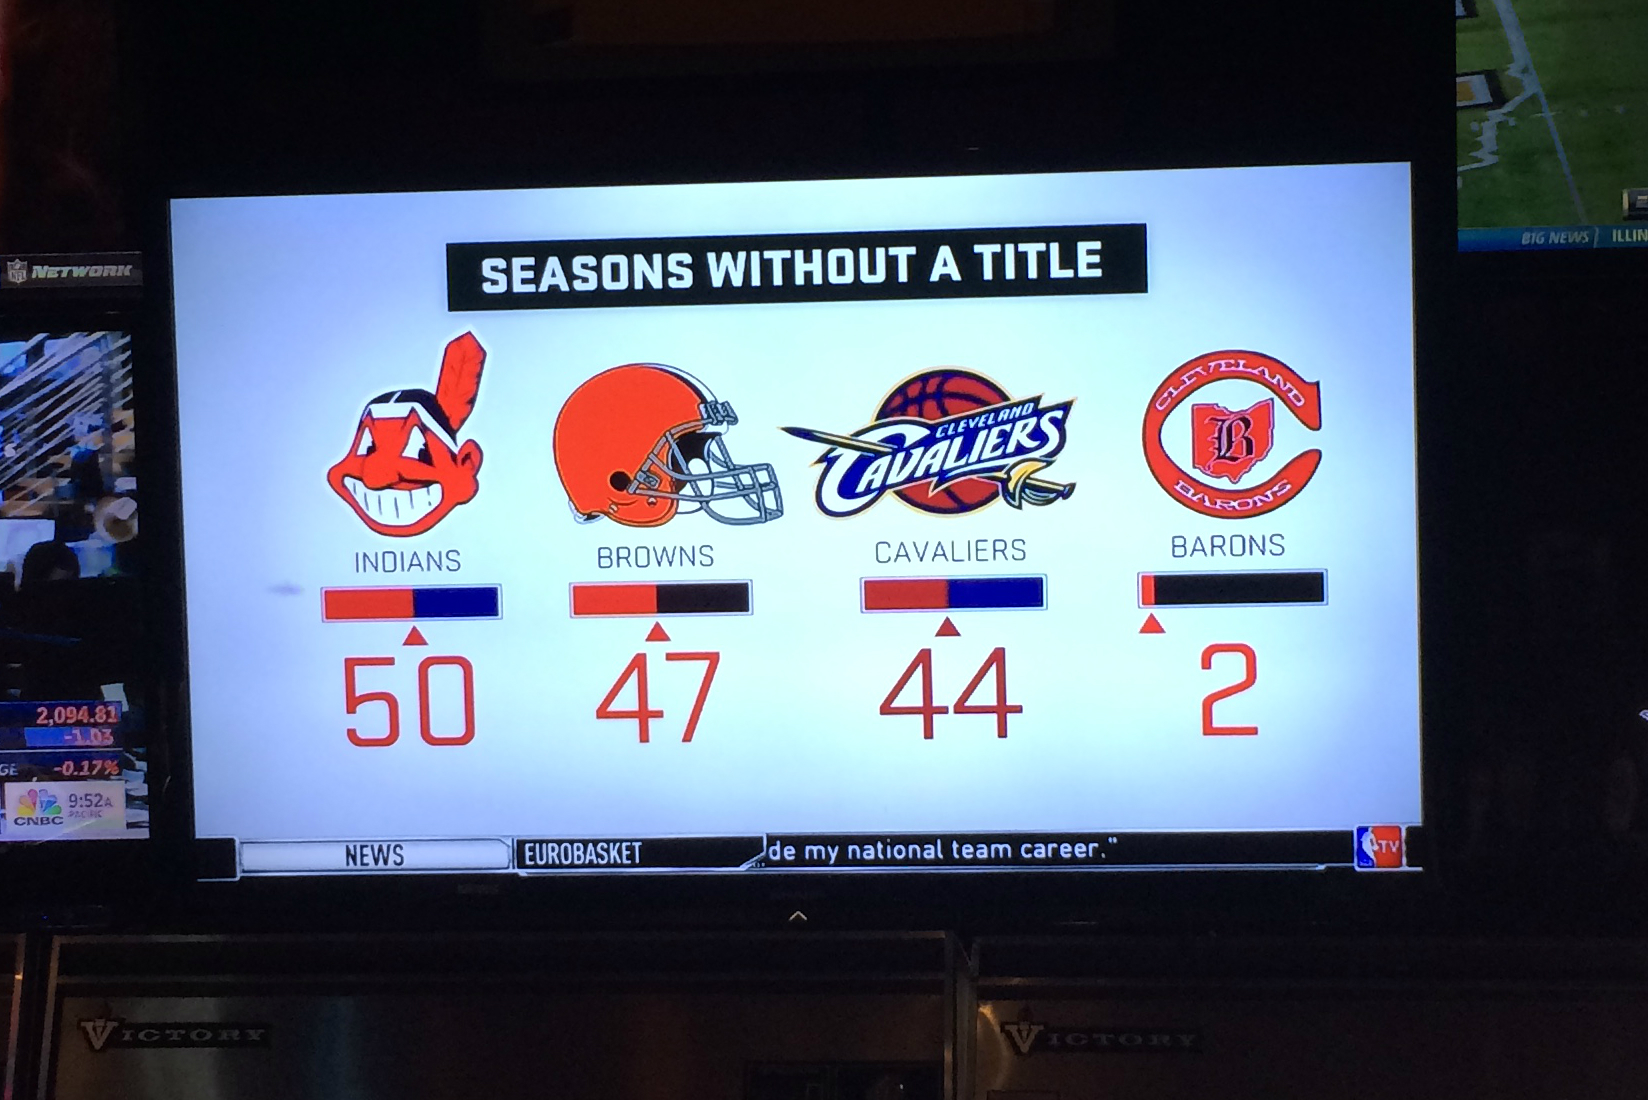 Seasons Without A Title